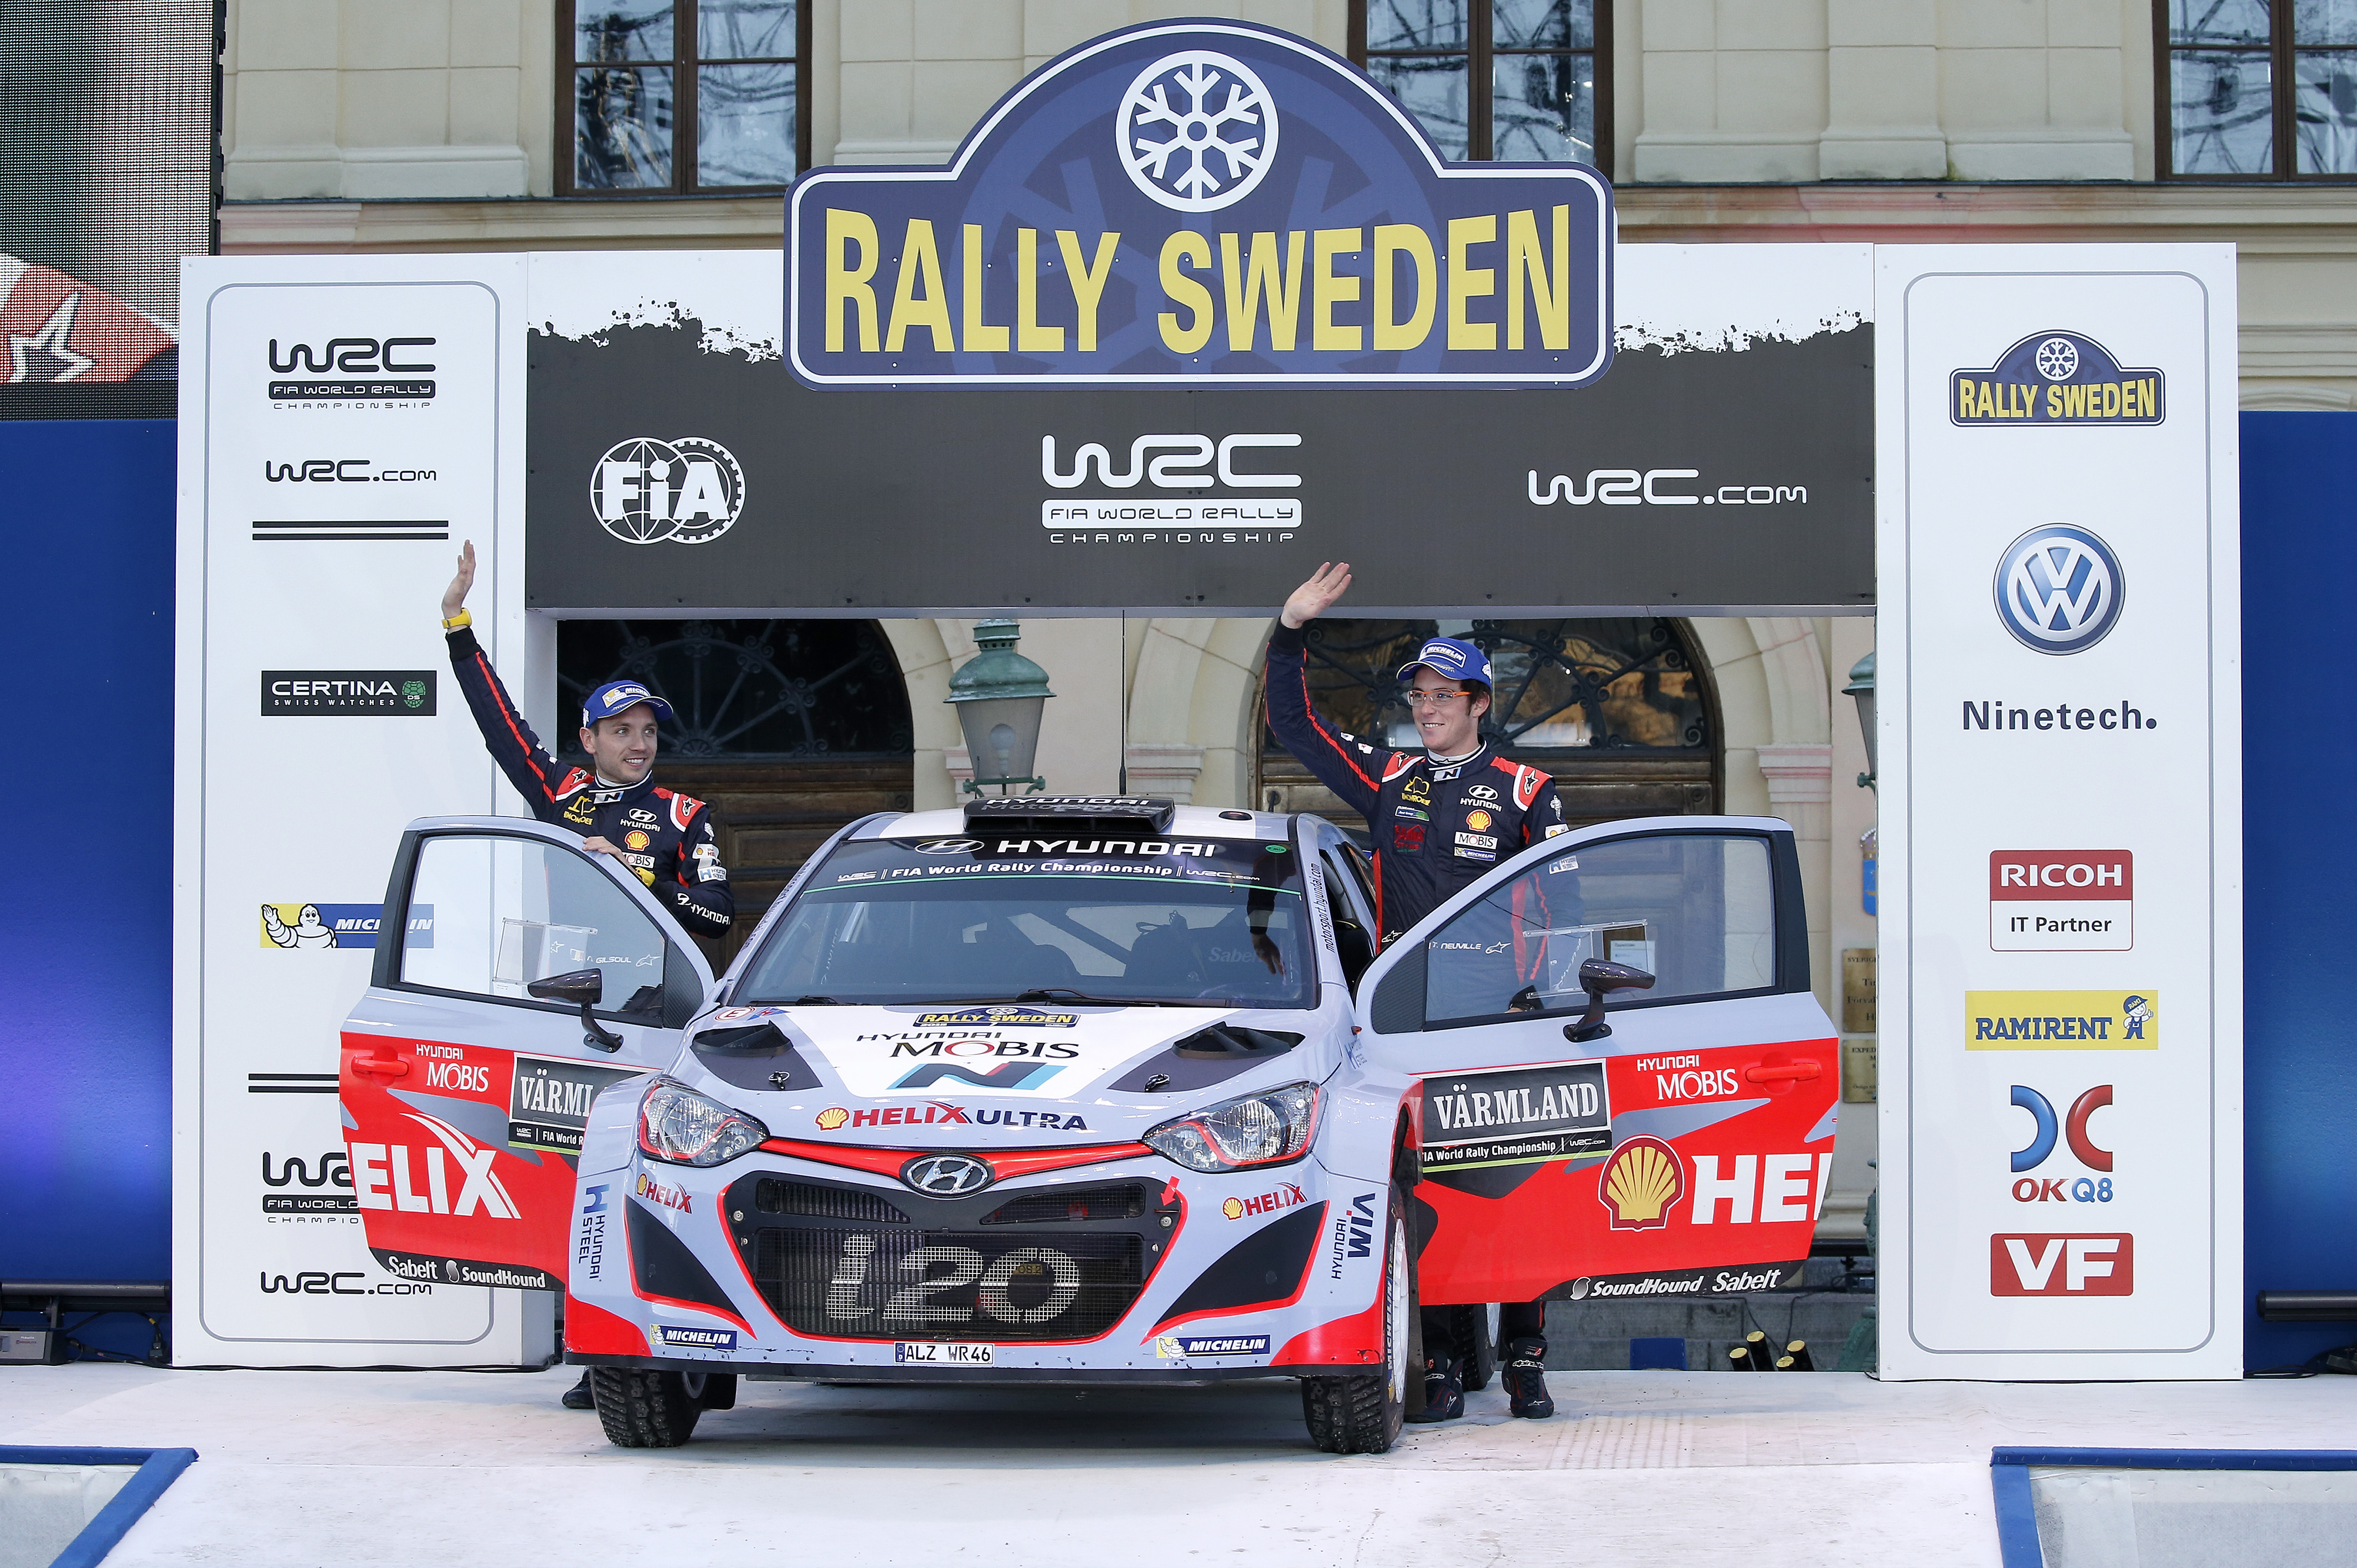 FileThierry Neuville Rally Sweden Jpg Wikimedia Commons - Rally sweden map 2016